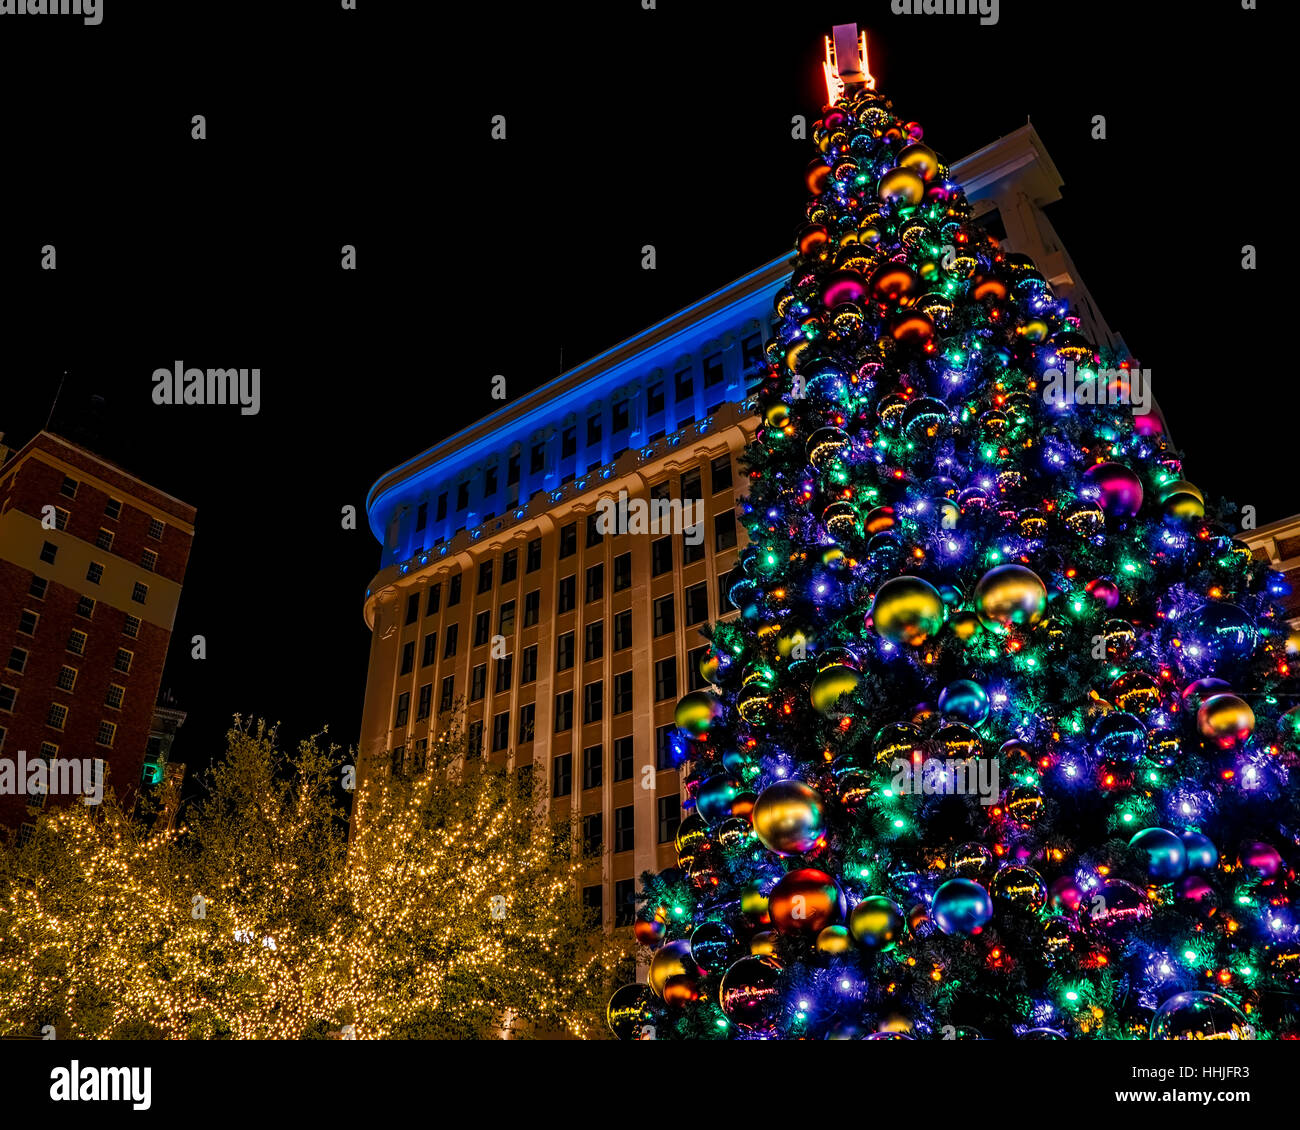 El Paso Christmas Lights.Christmas Lights At San Jacinto Plaza In The Center Of El